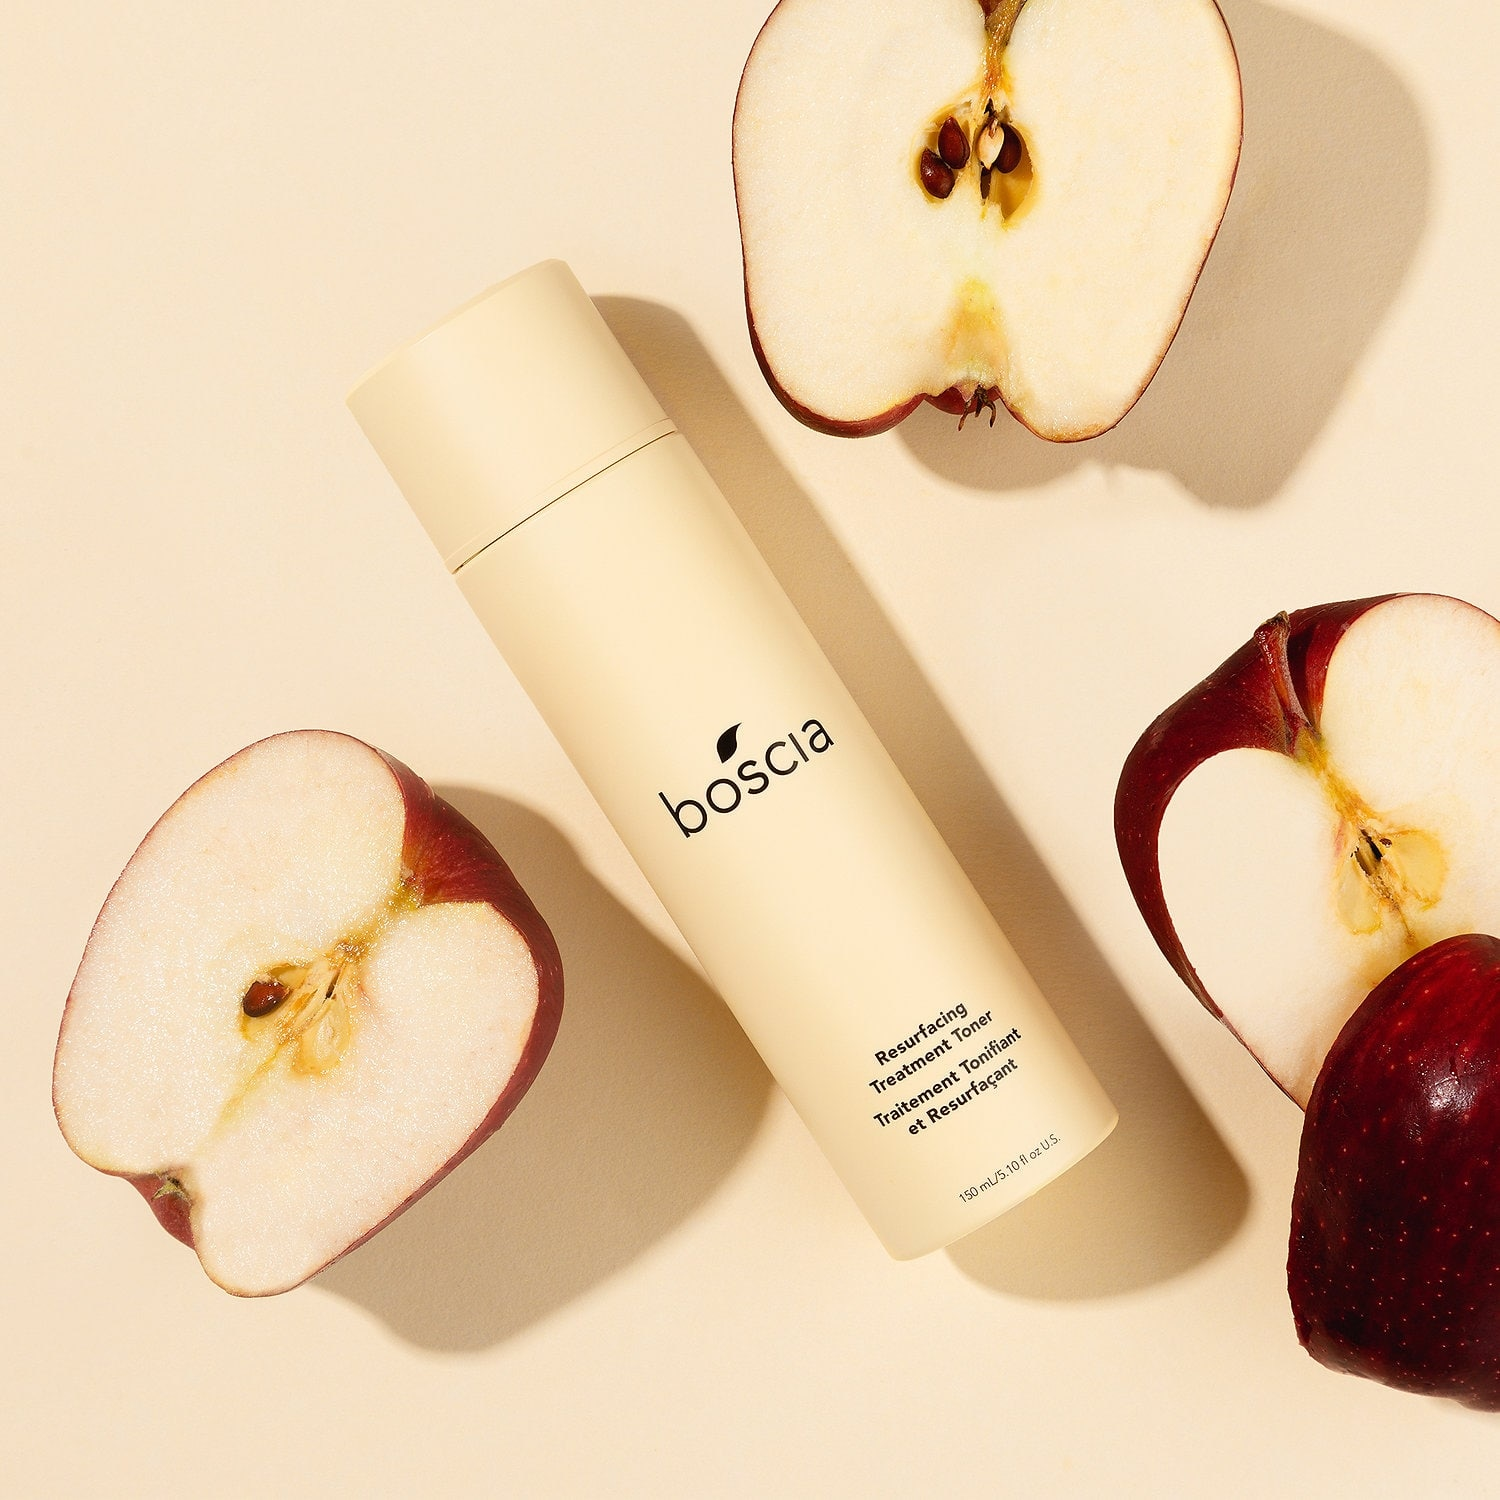 RESURFACING TREATMENT TONER WITH APPLE CIDER